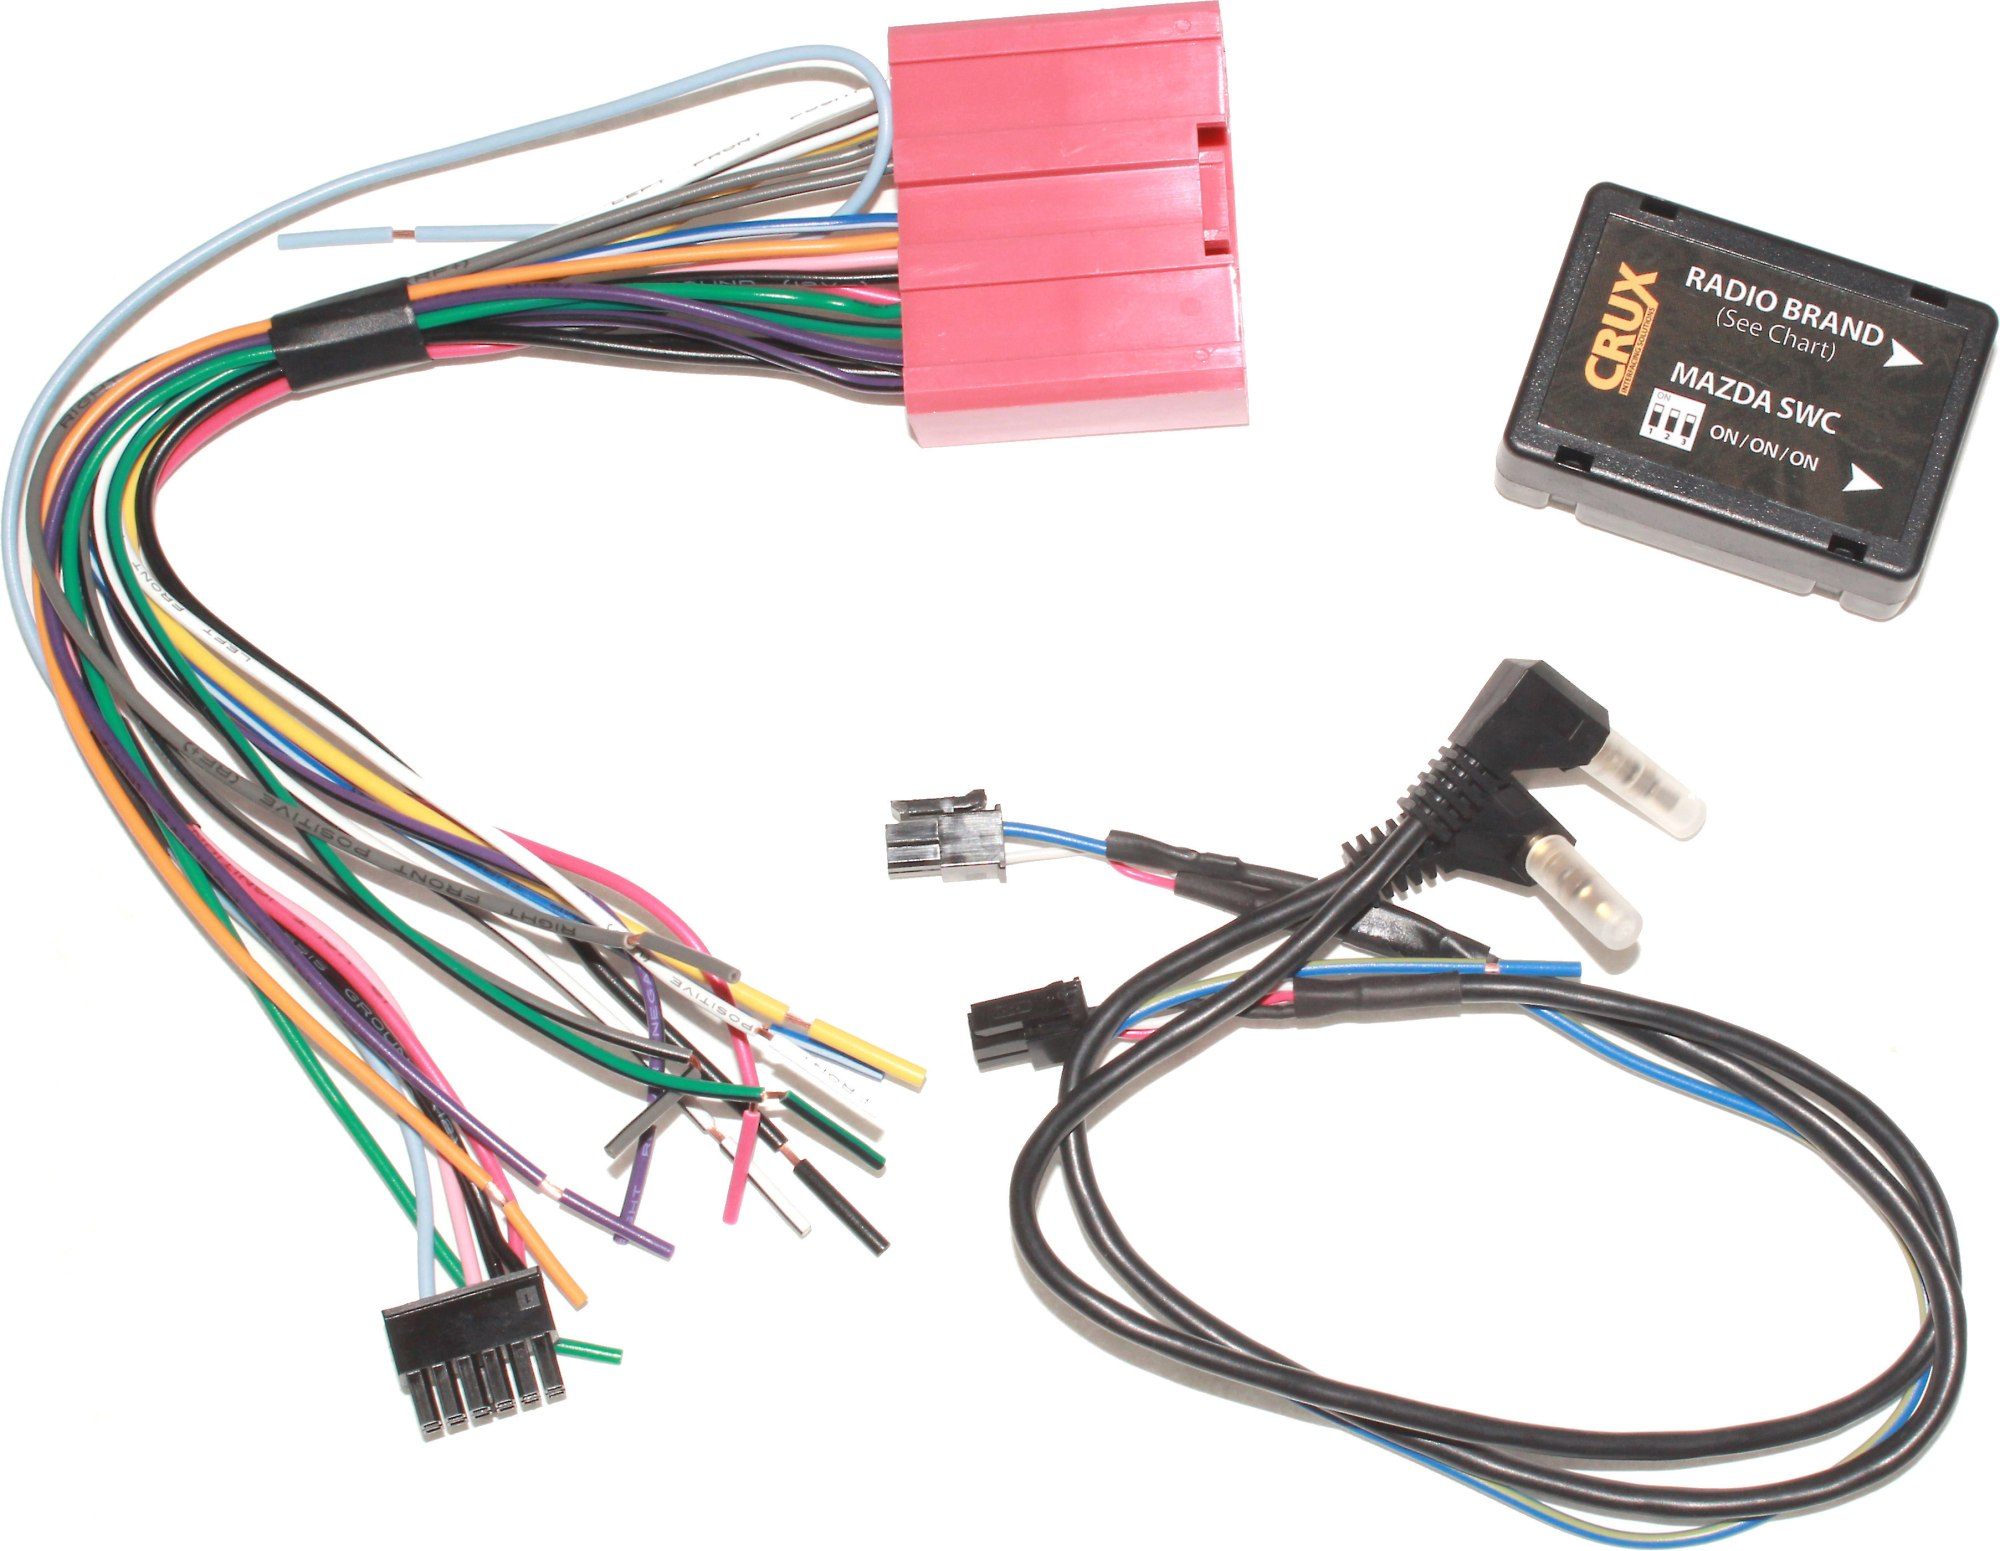 hight resolution of crux swrmz 64c wiring interface connect a new car stereo and retain wiring diagram with the dealer mode wires labelled